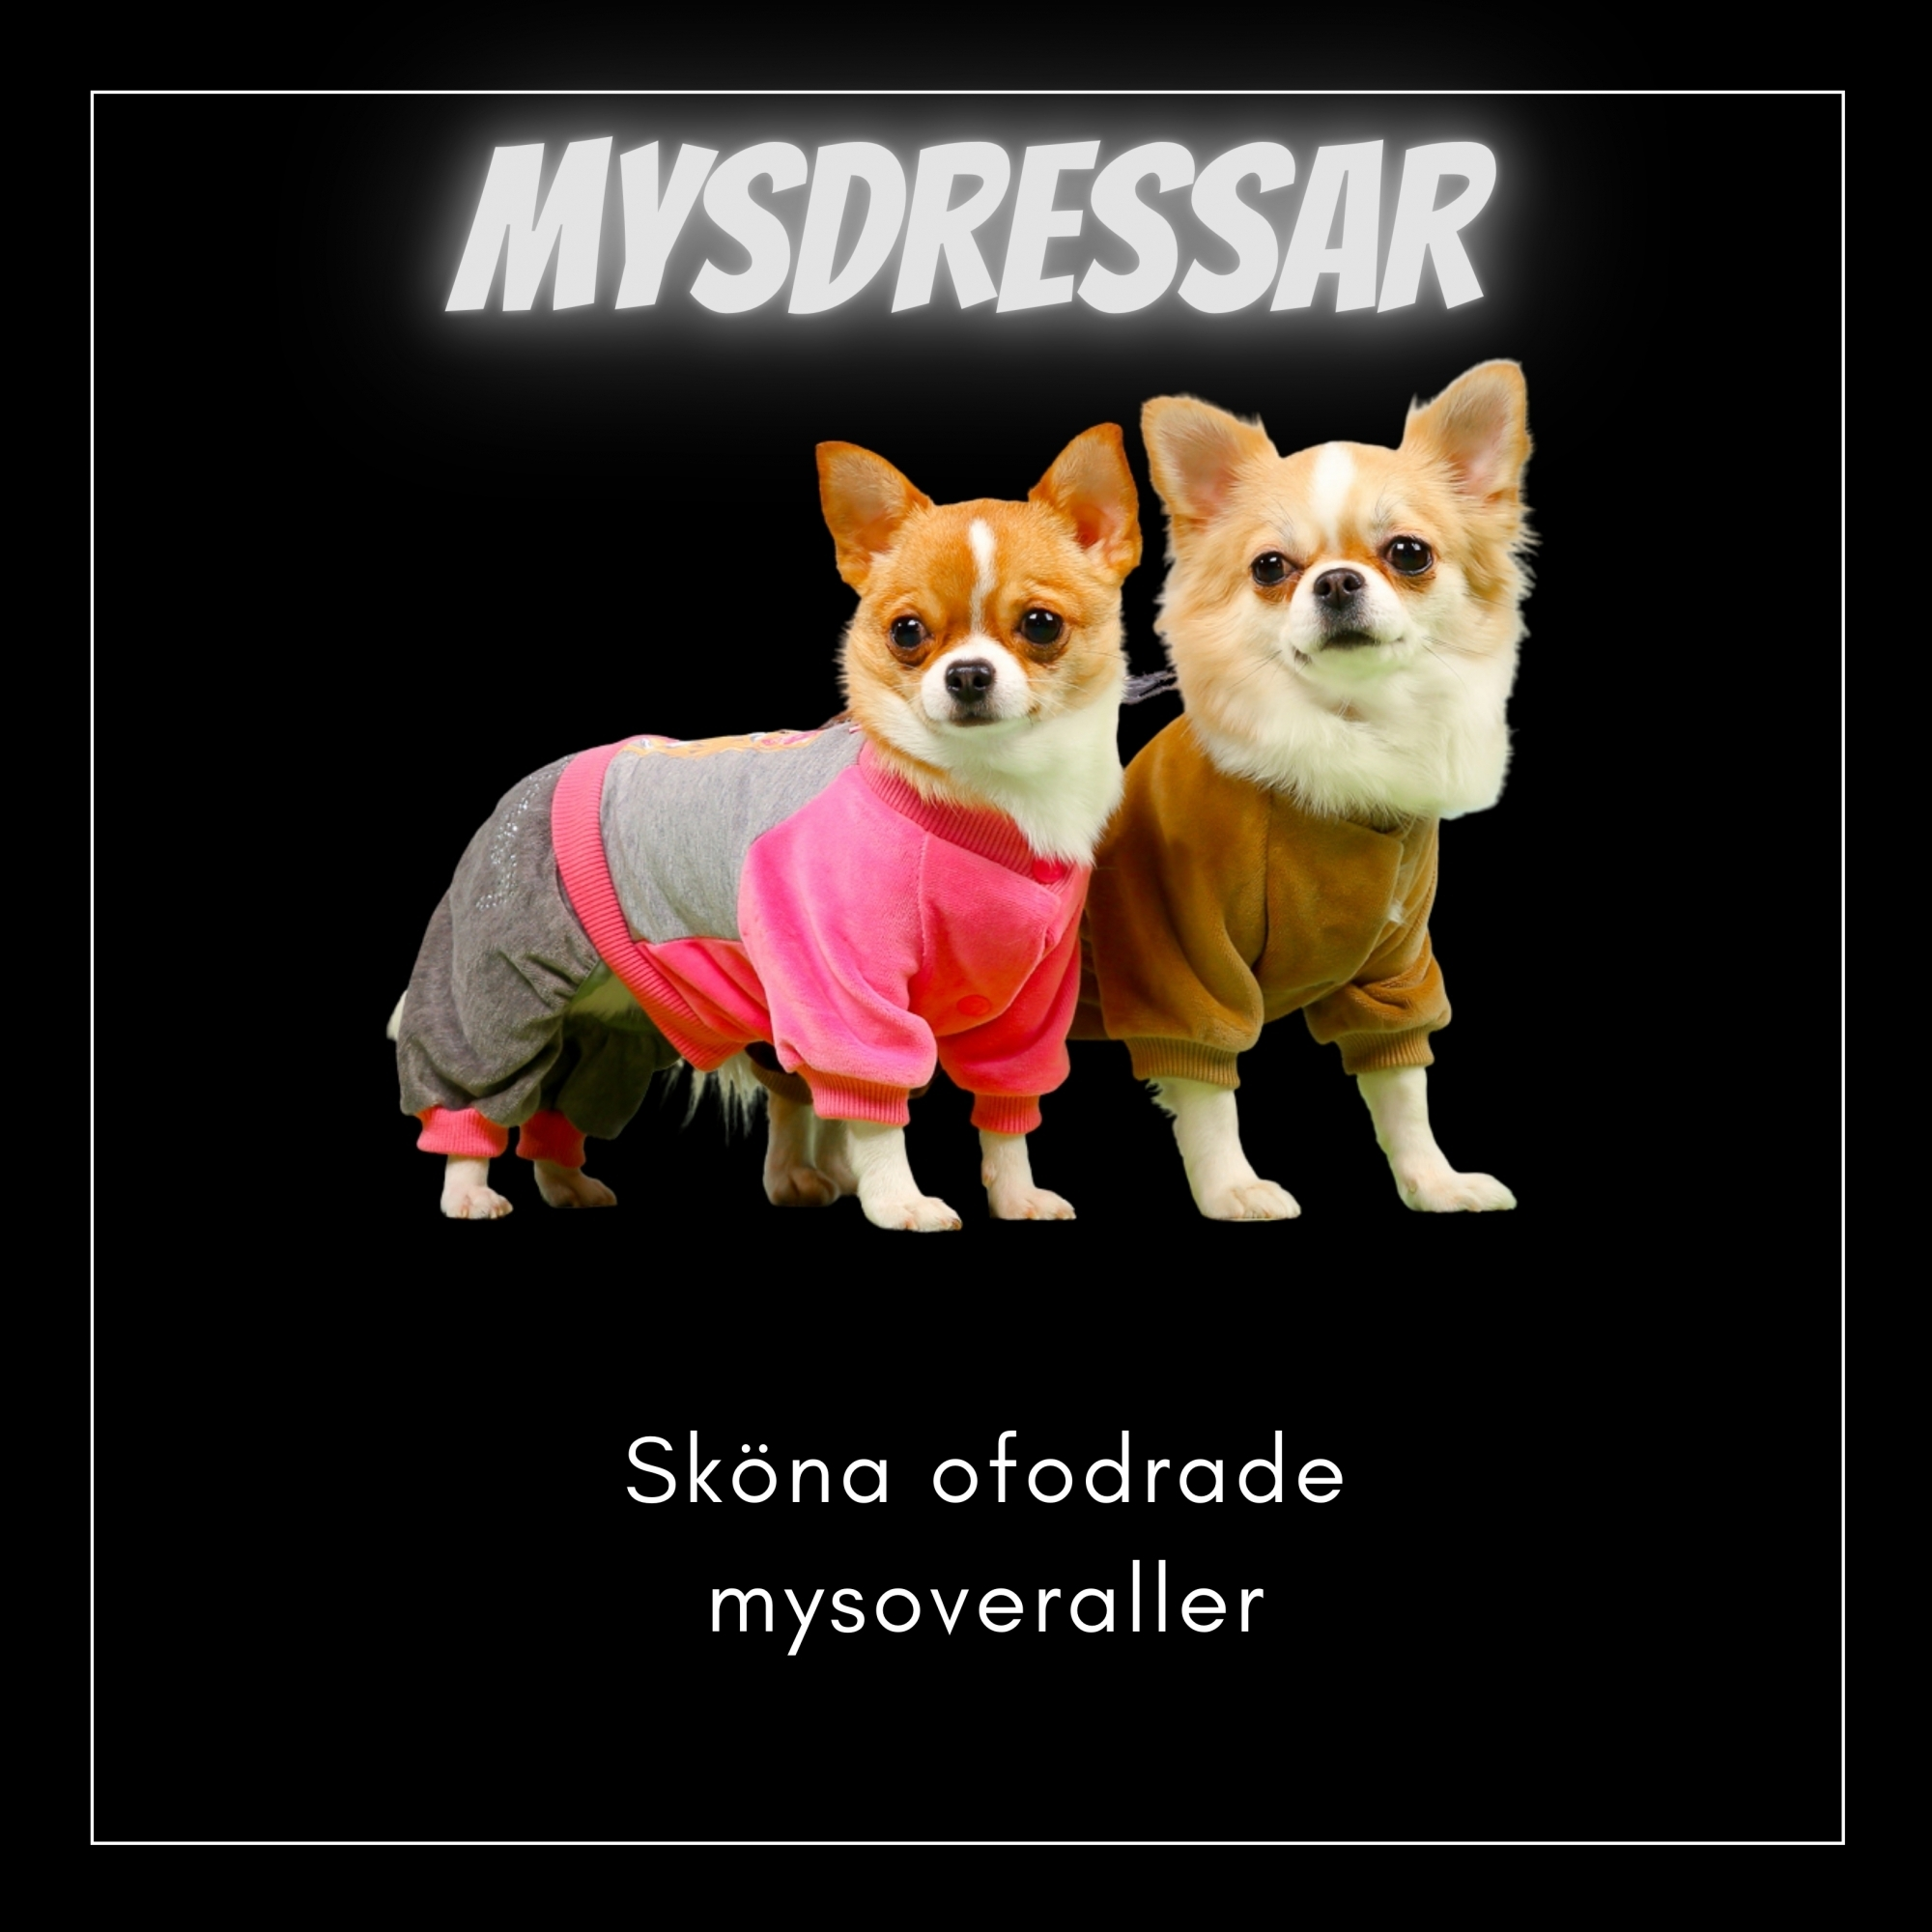 Suits & Mysoveraller - Stora hundar - Passion For Pet Fashion